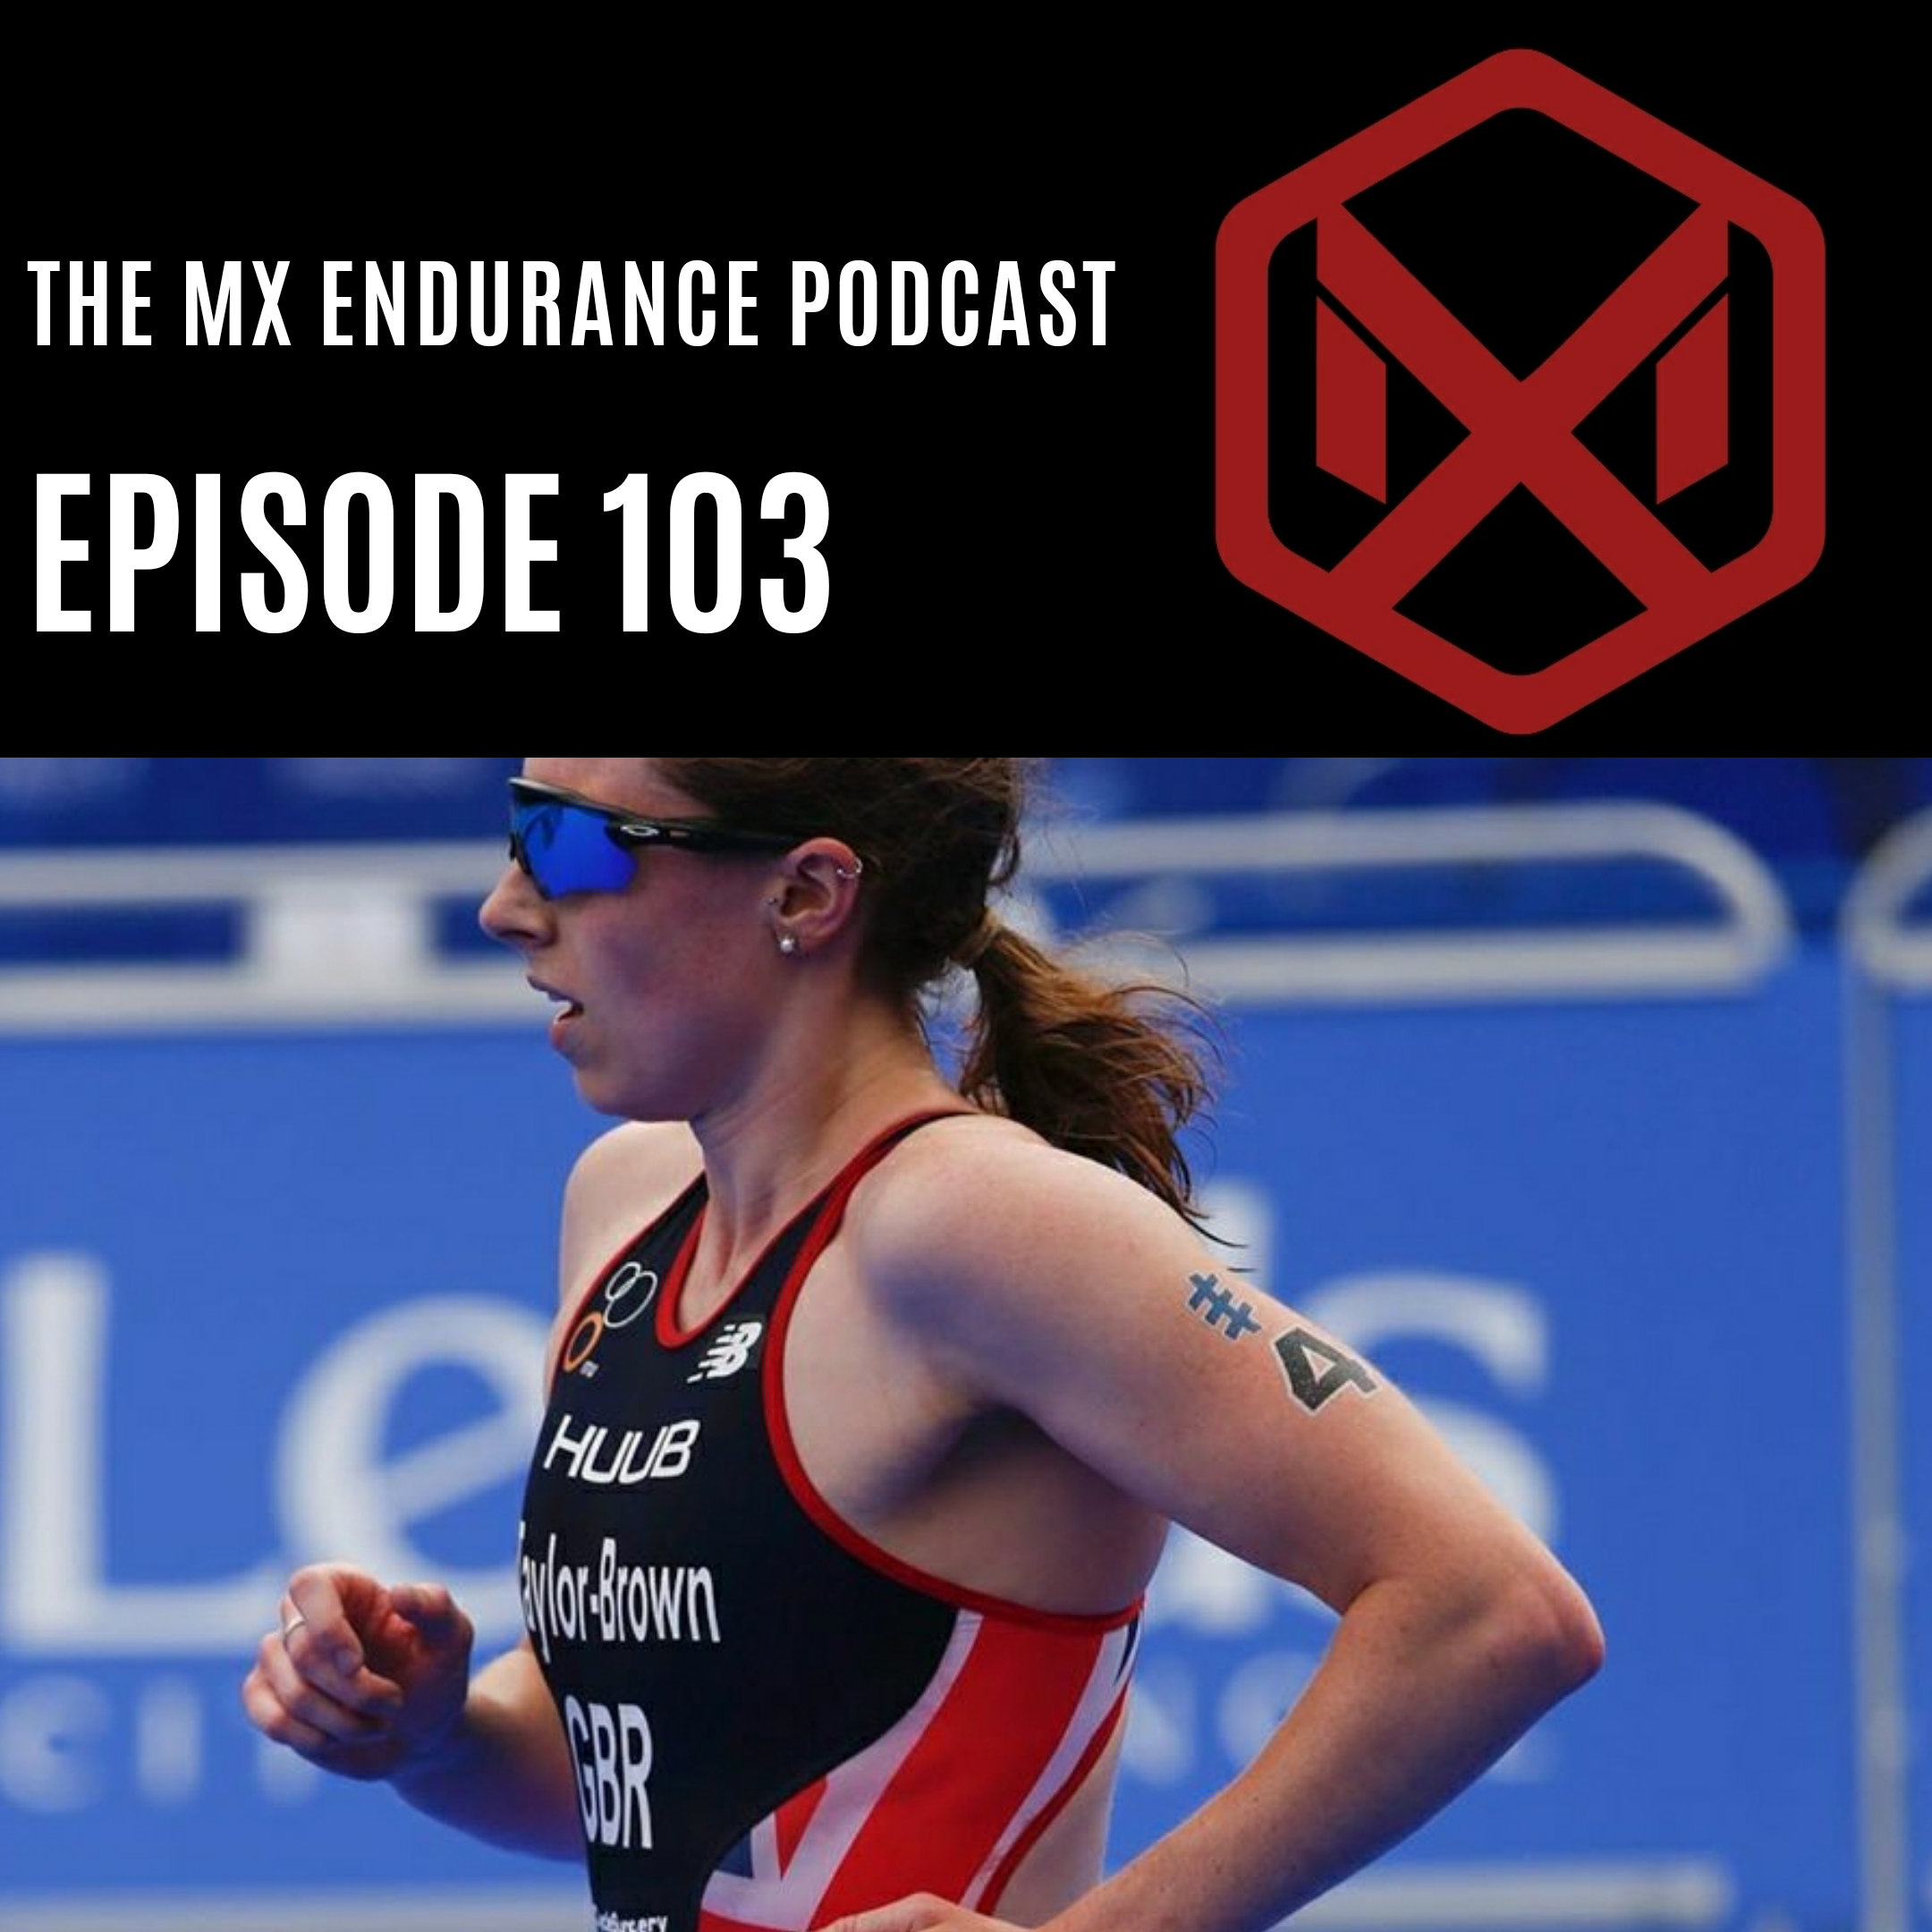 #103 - IronMan Being Sued & Team GB Athlete, Georgia Taylor-Brown